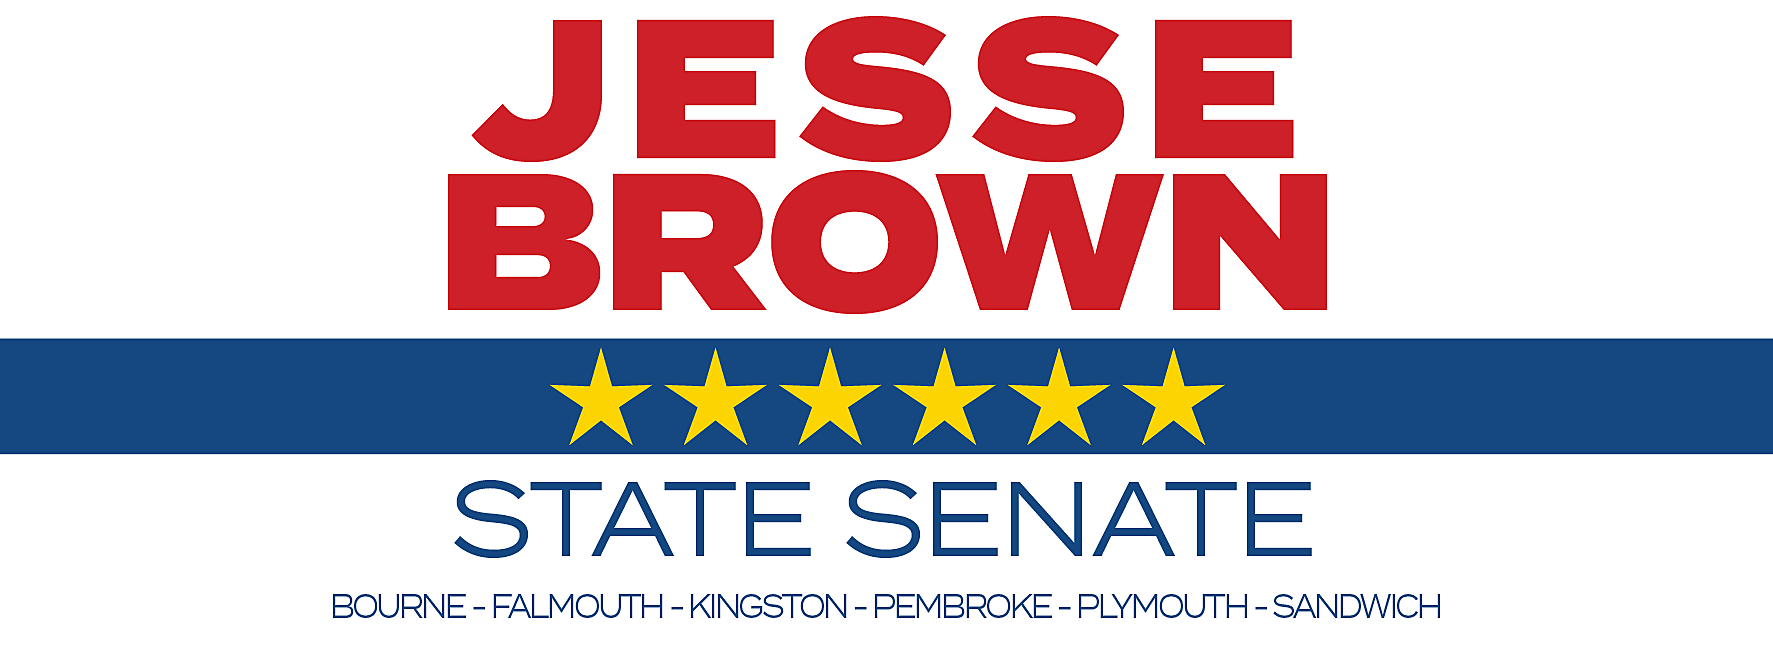 Jesse Brown Committee: General Fund